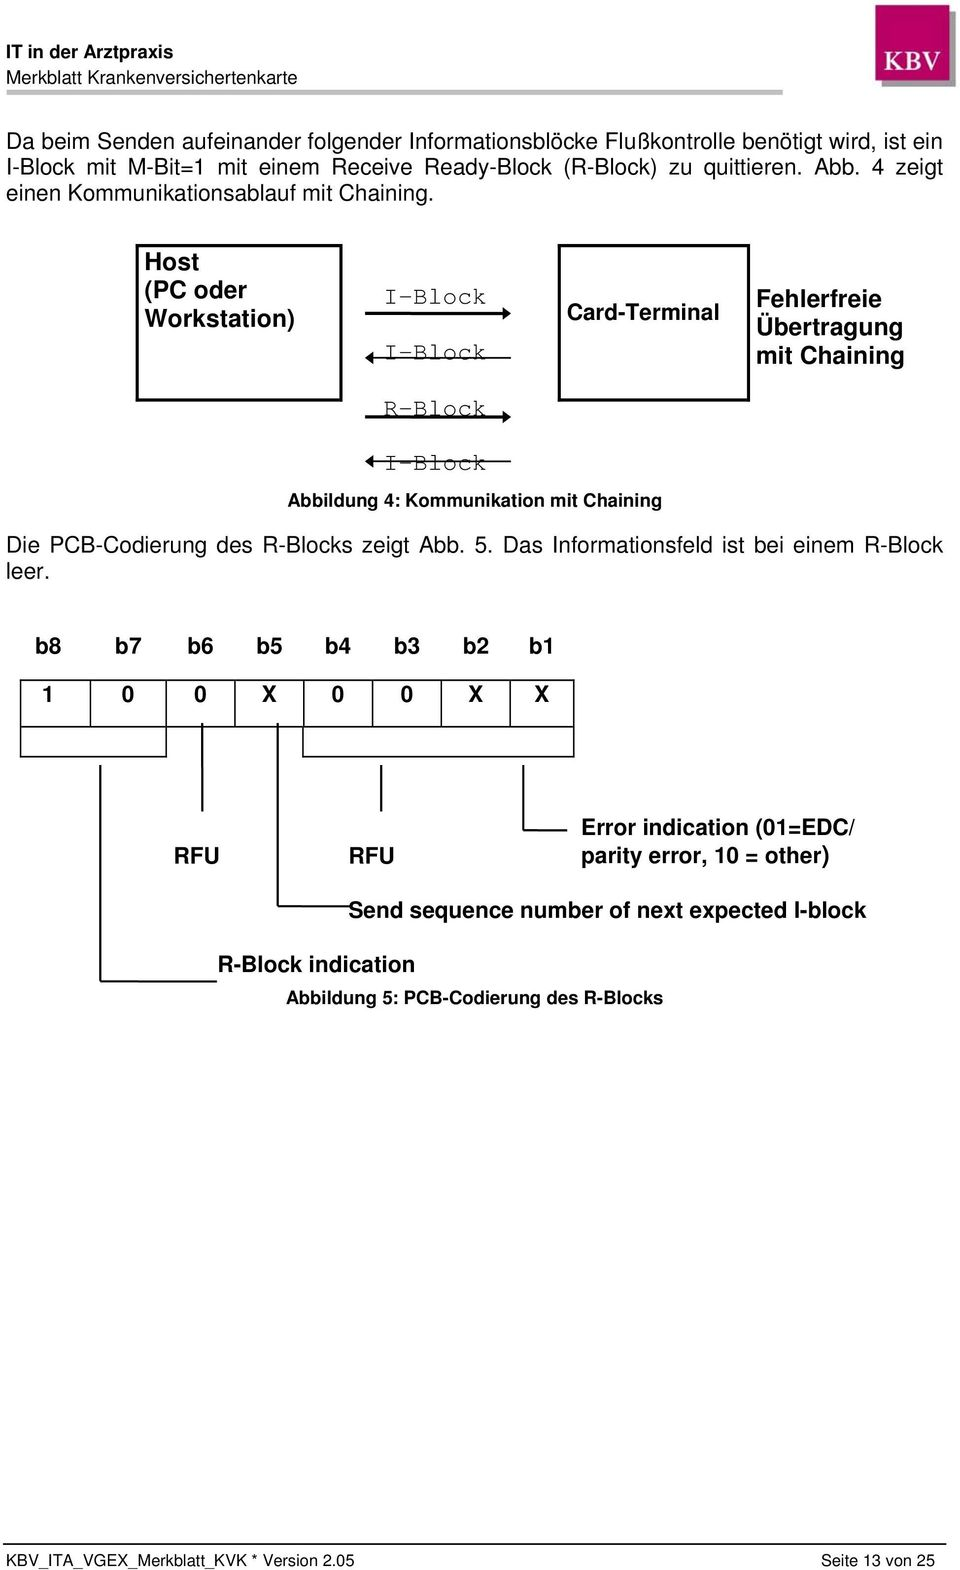 Host (PC oder Workstation) I-Block I-Block Card-Terminal Fehlerfreie Übertragung mit Chaining R-Block I-Block Abbildung 4: Kommunikation mit Chaining Die PCB-Codierung des R-Blocks